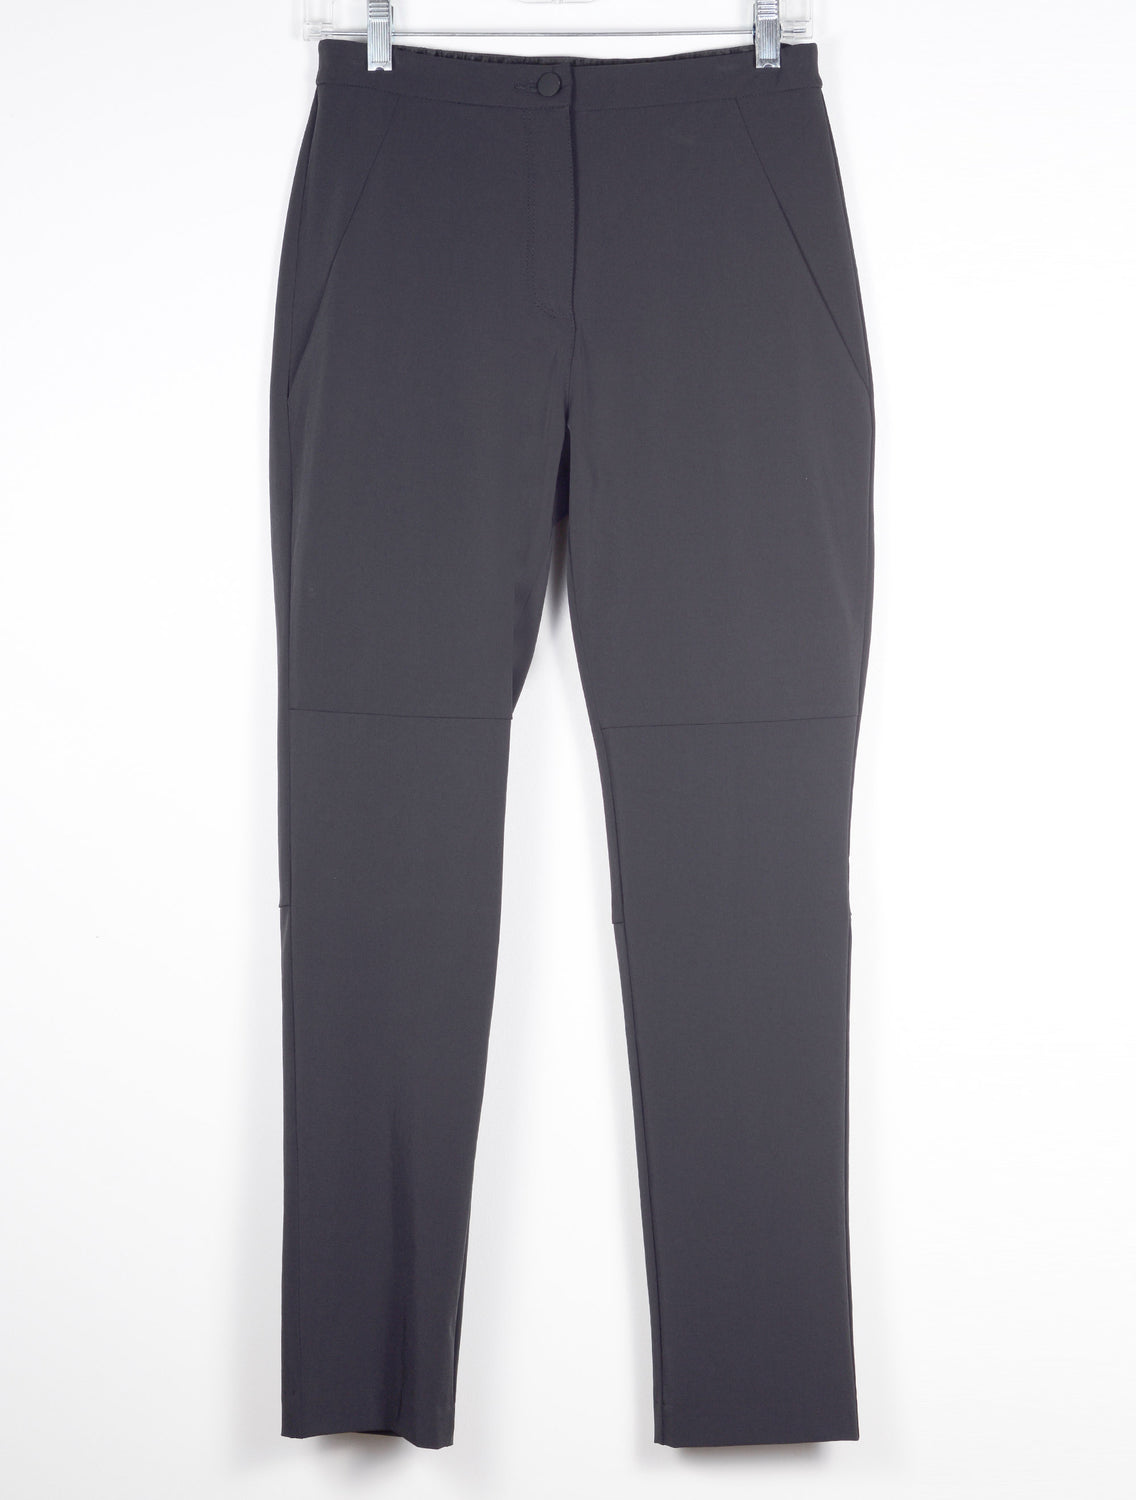 Pants 8042 in Black